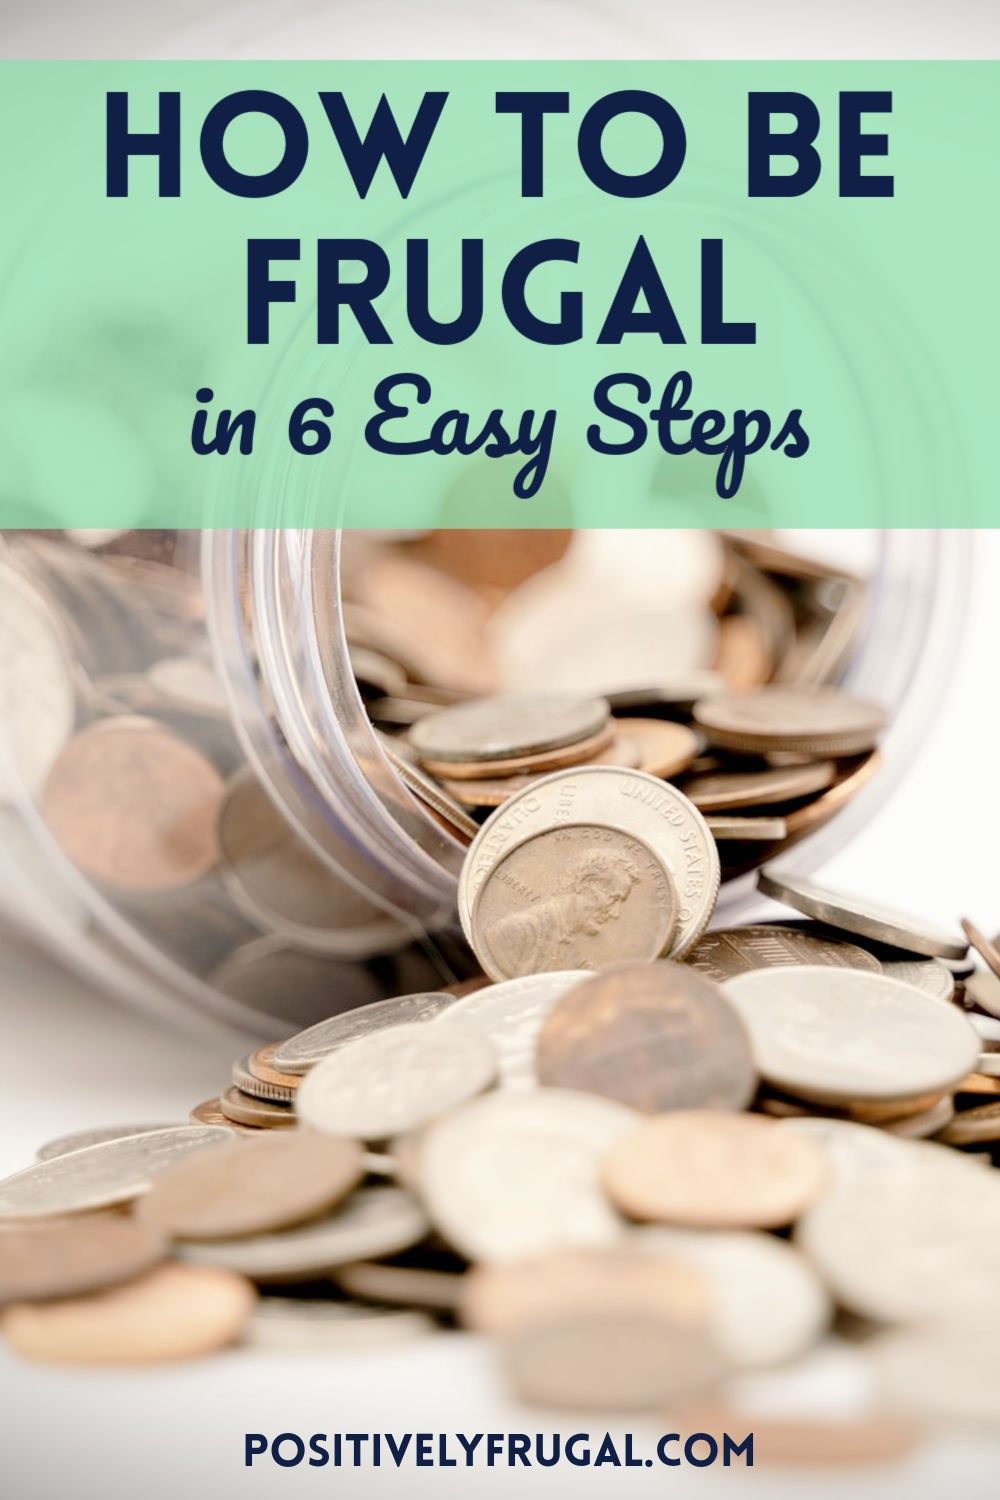 How To Be Frugal by PositivelyFrugal.com